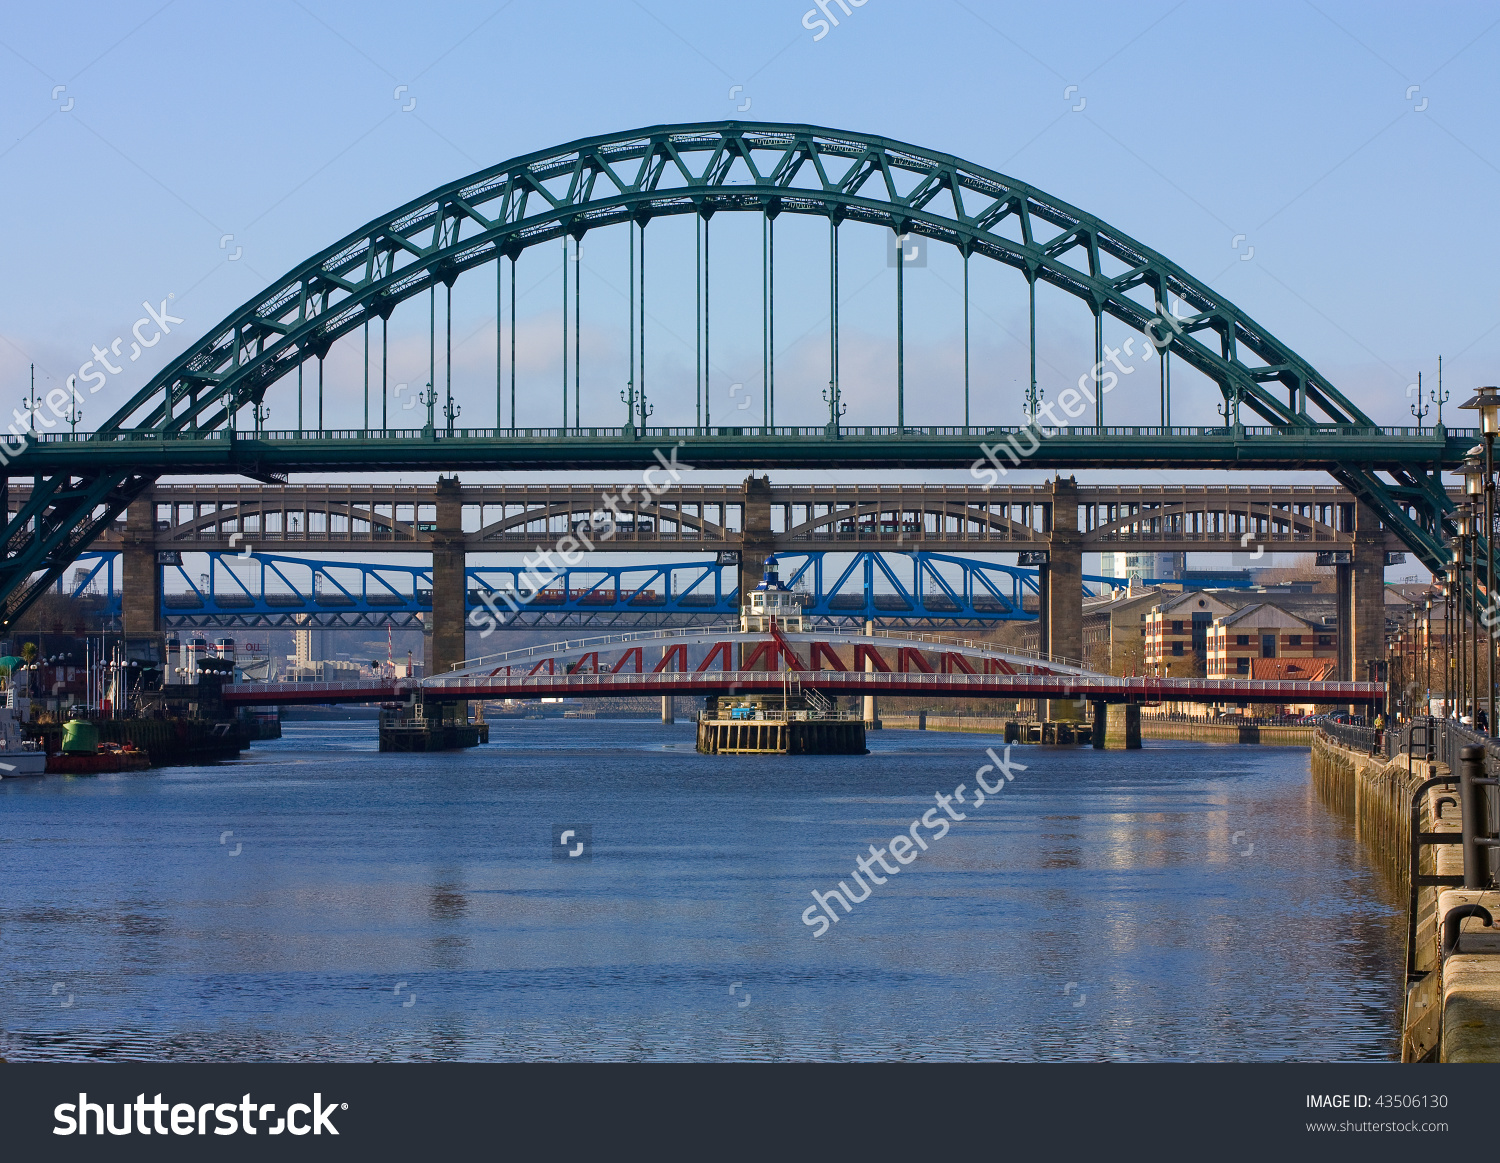 Classic View Iconic Tyne Bridge Spanning Stock Photo 43506130.